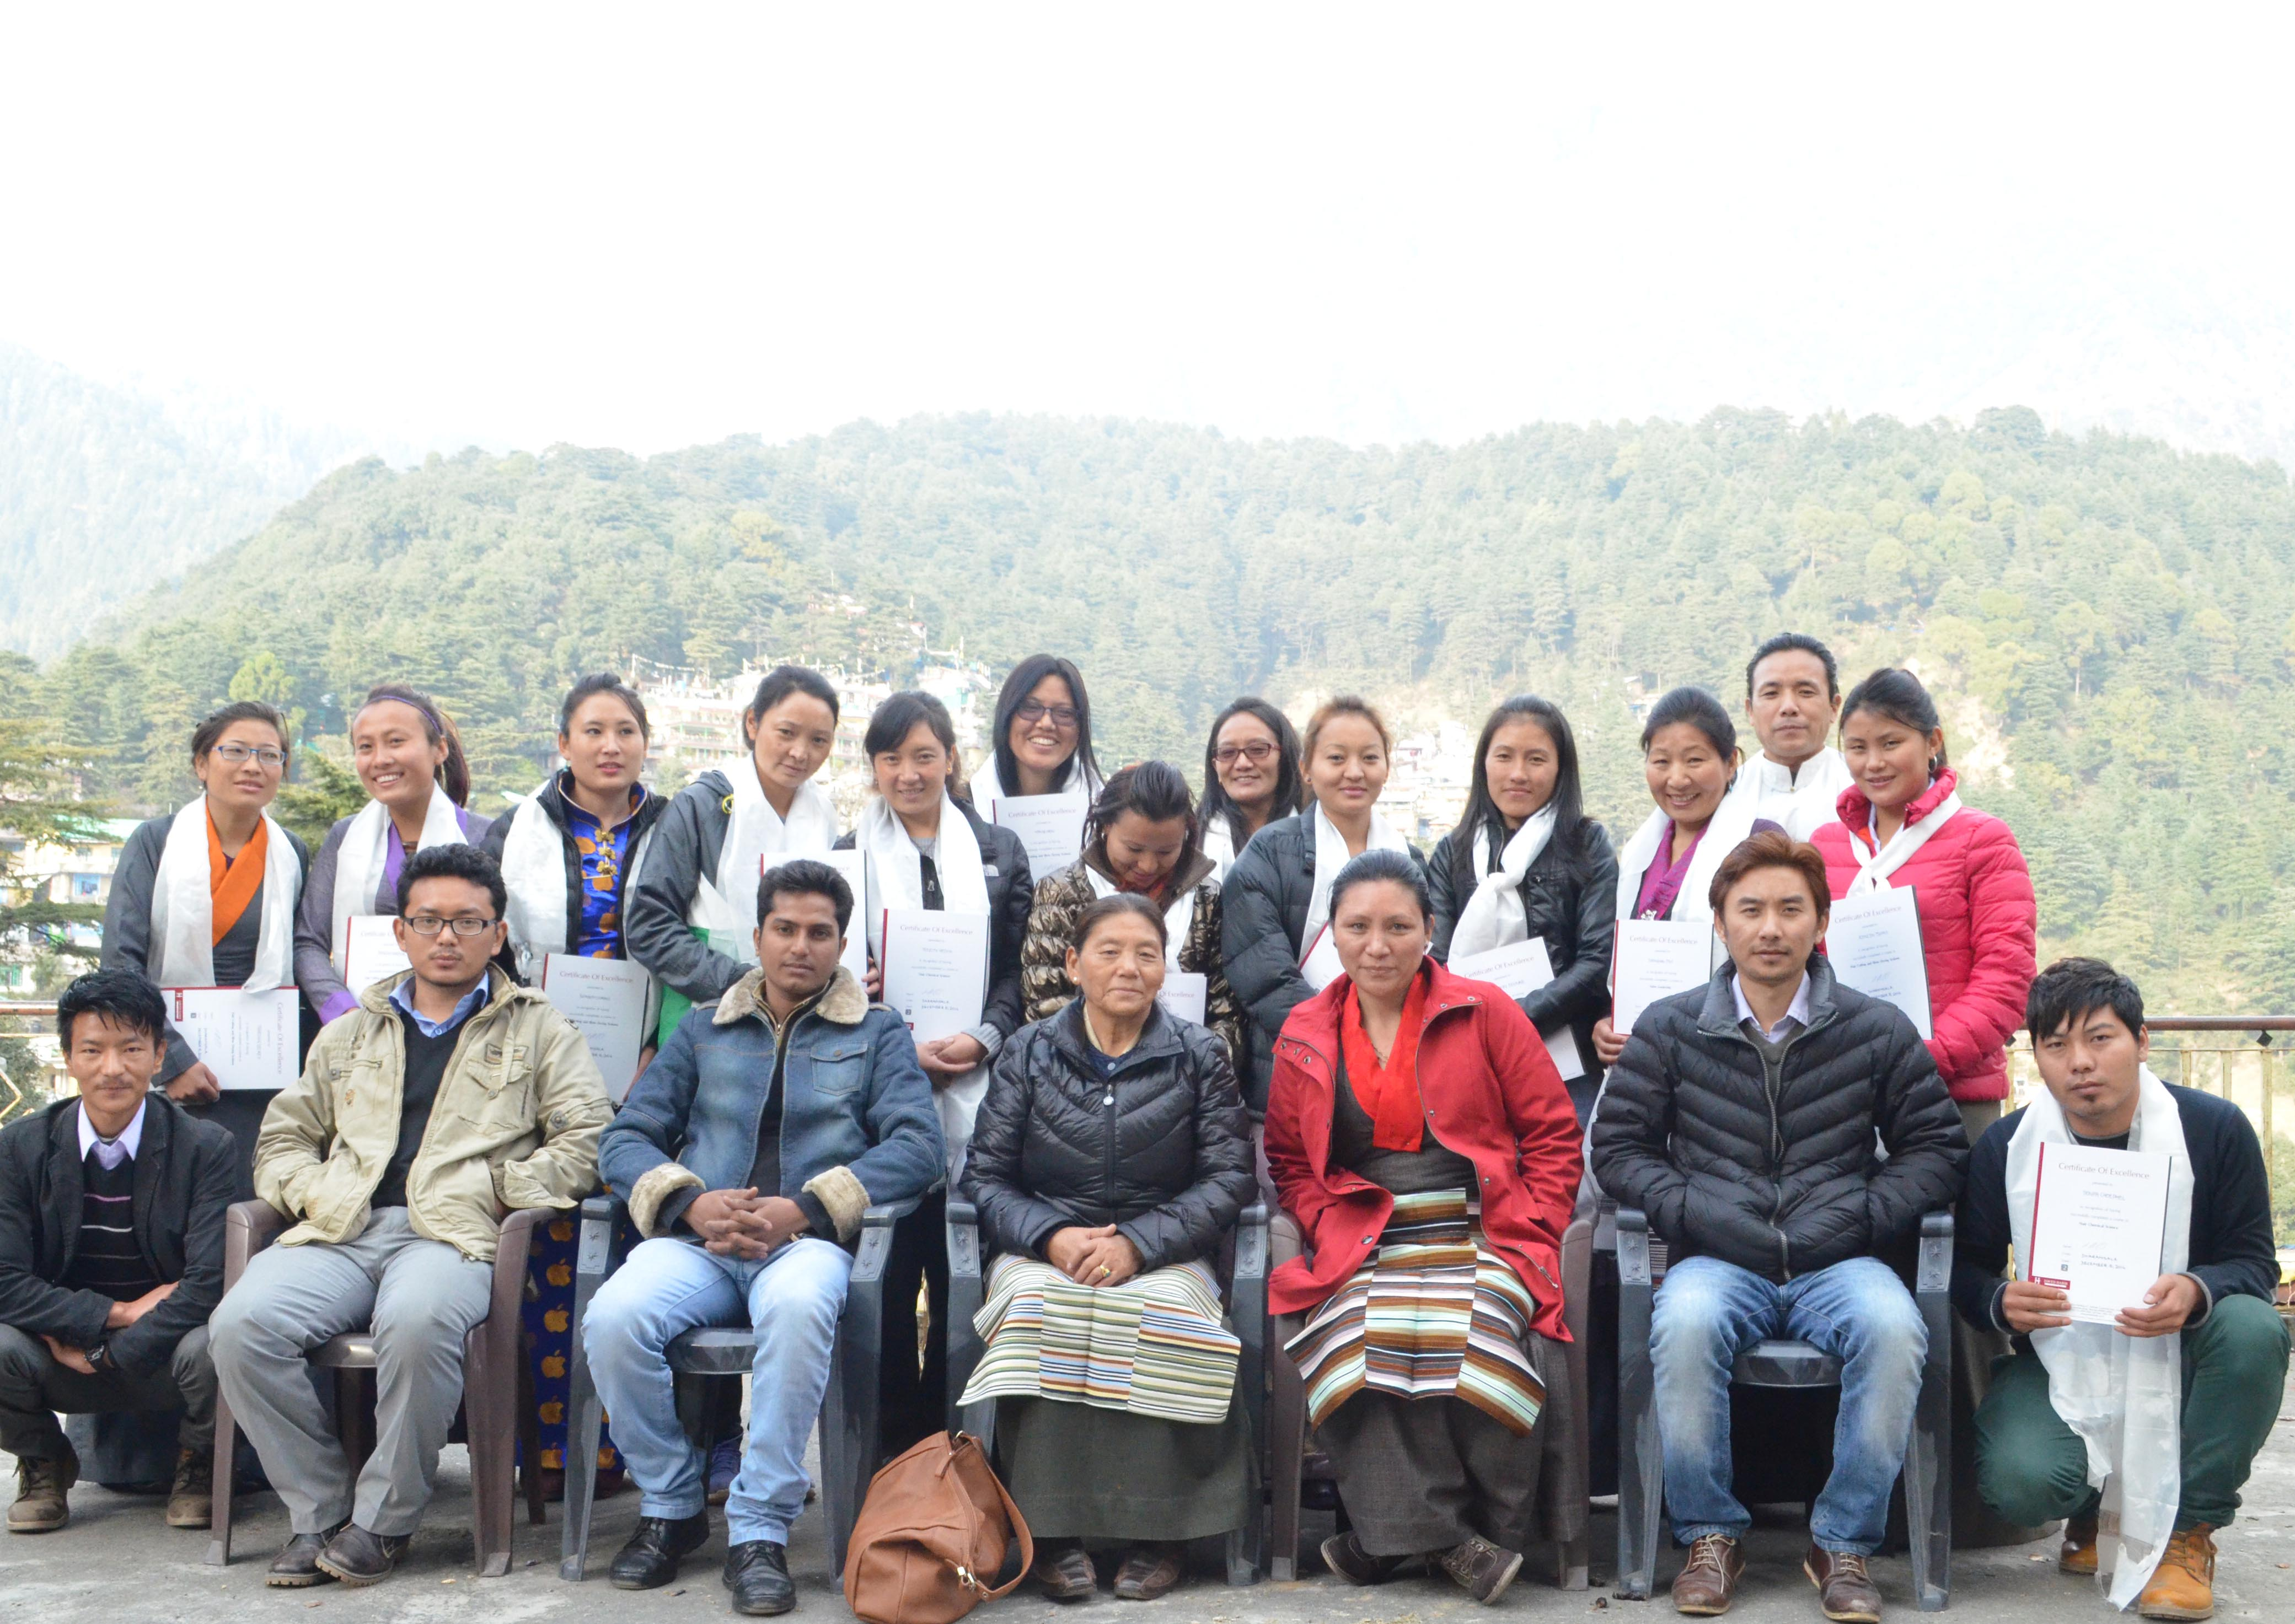 Convocation held by the Tibetan Career Center, a project of the Central Tibetan Administration, Dharamshala